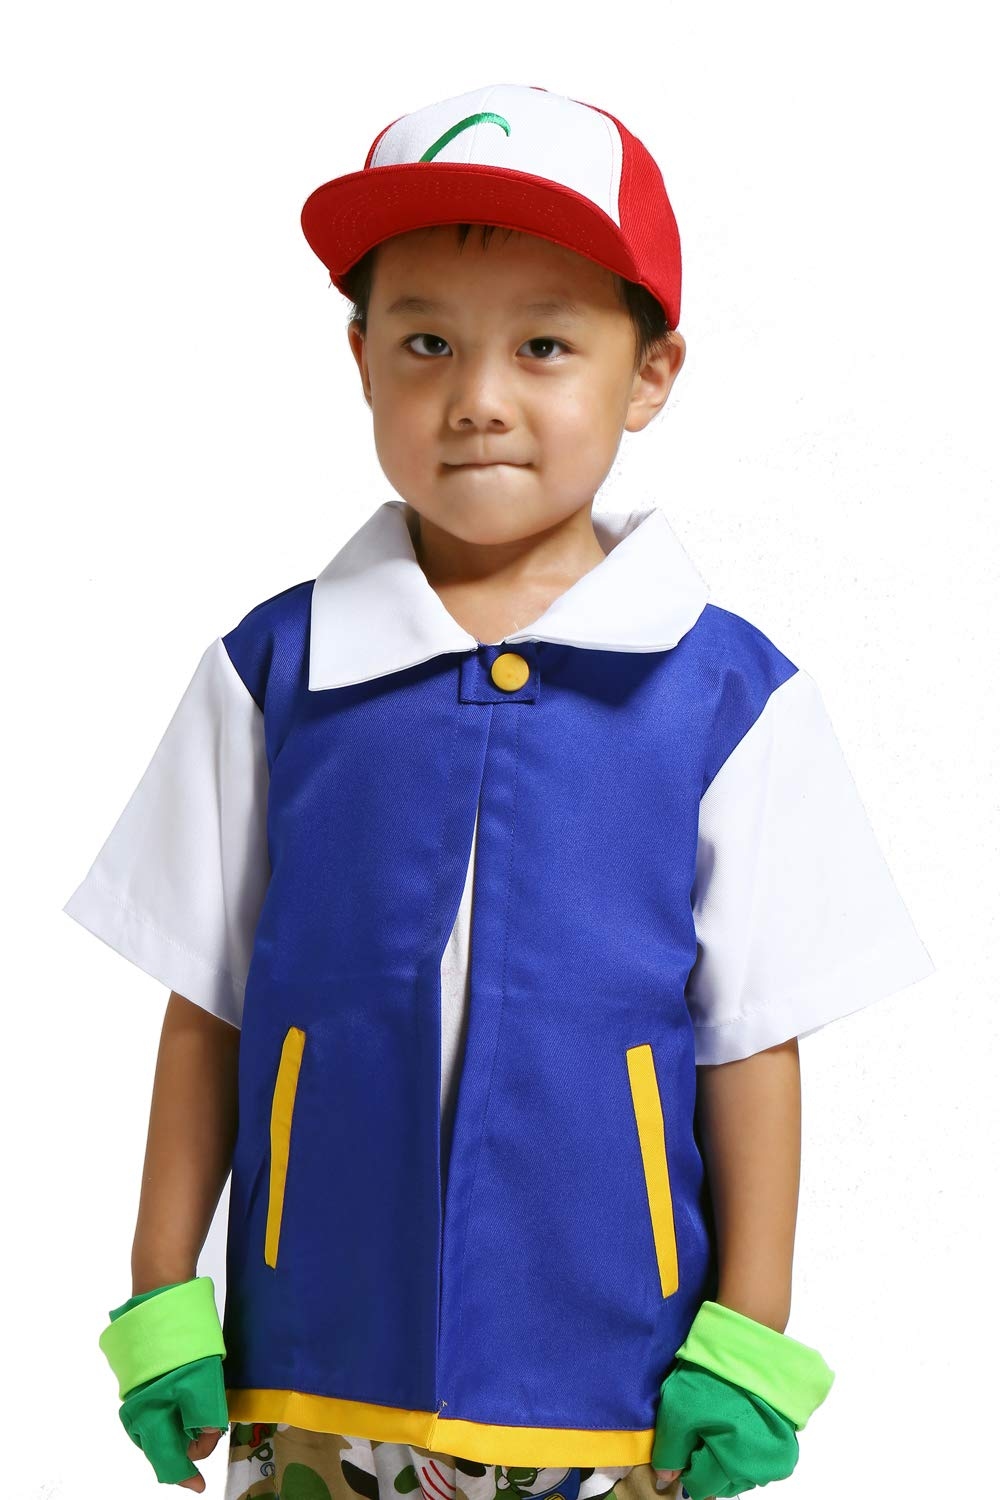 MUFENG Cosplay Costume for Adult Kids,Halloween Hoodie,Jacket Gloves Hat Sets for Trainer